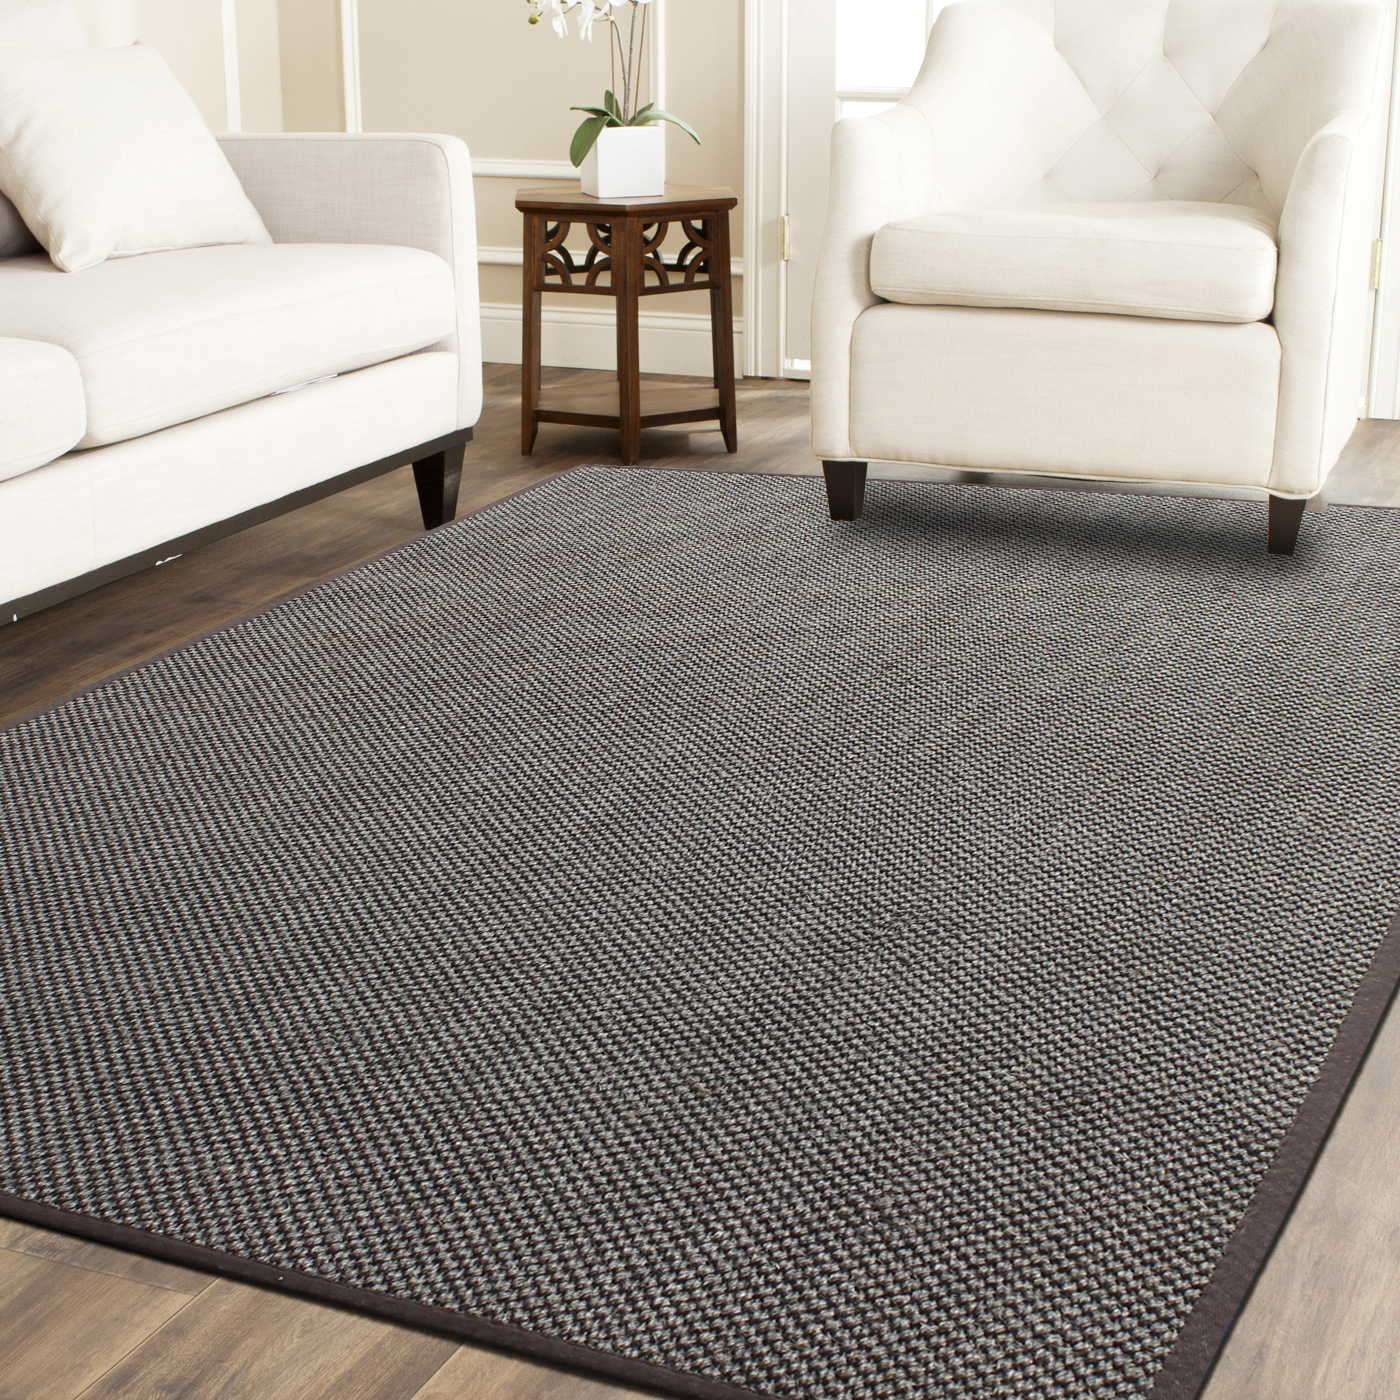 A1HC Indoor Hand Finished Natural Sisal Rug With Cotton Border Desgn Tiger  Eye Color Mix Brown